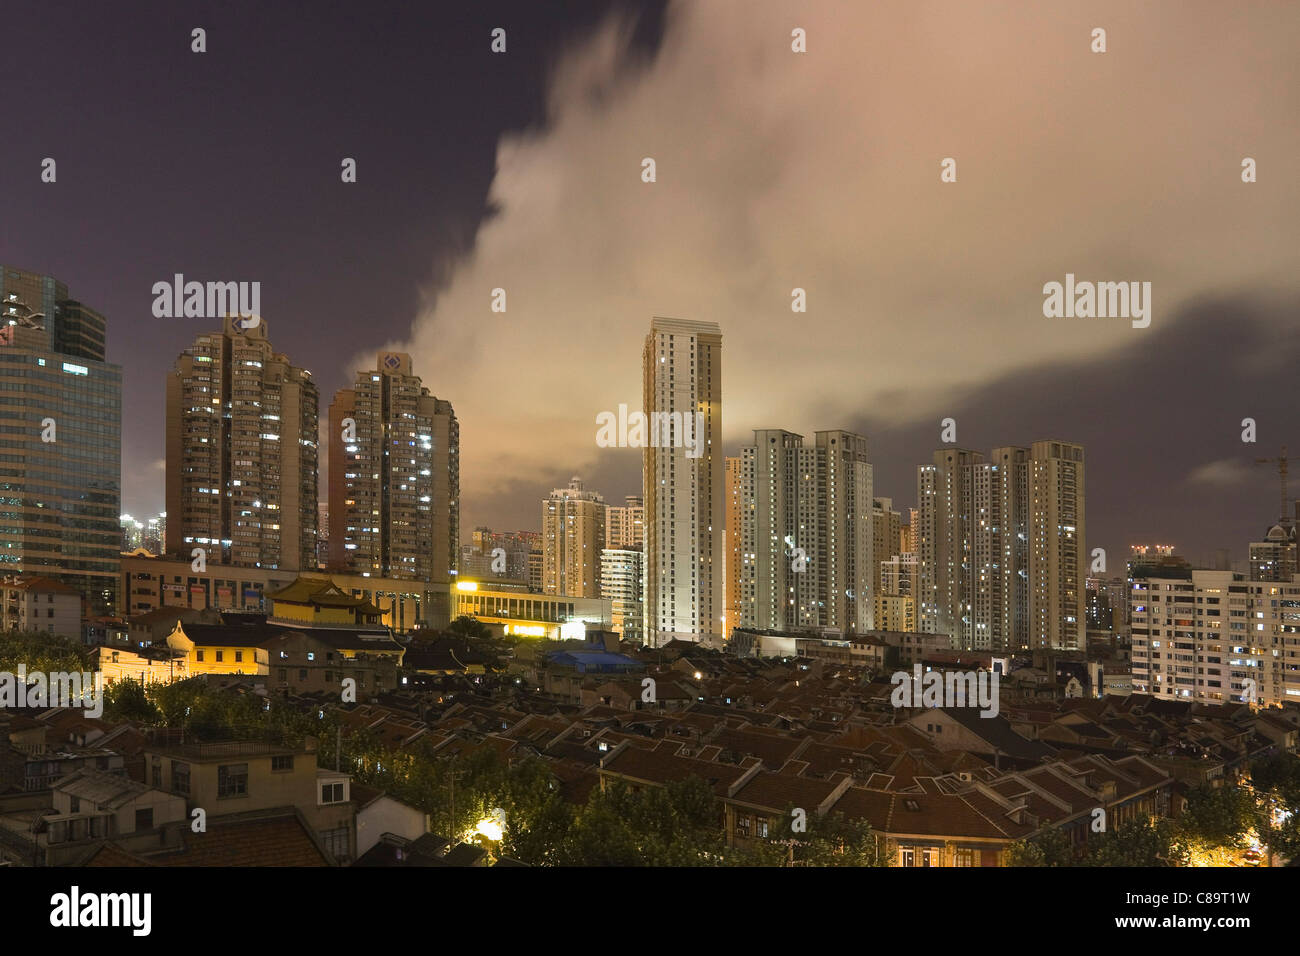 China, Shanghai, View of skyscrapers in city at night - Stock Image